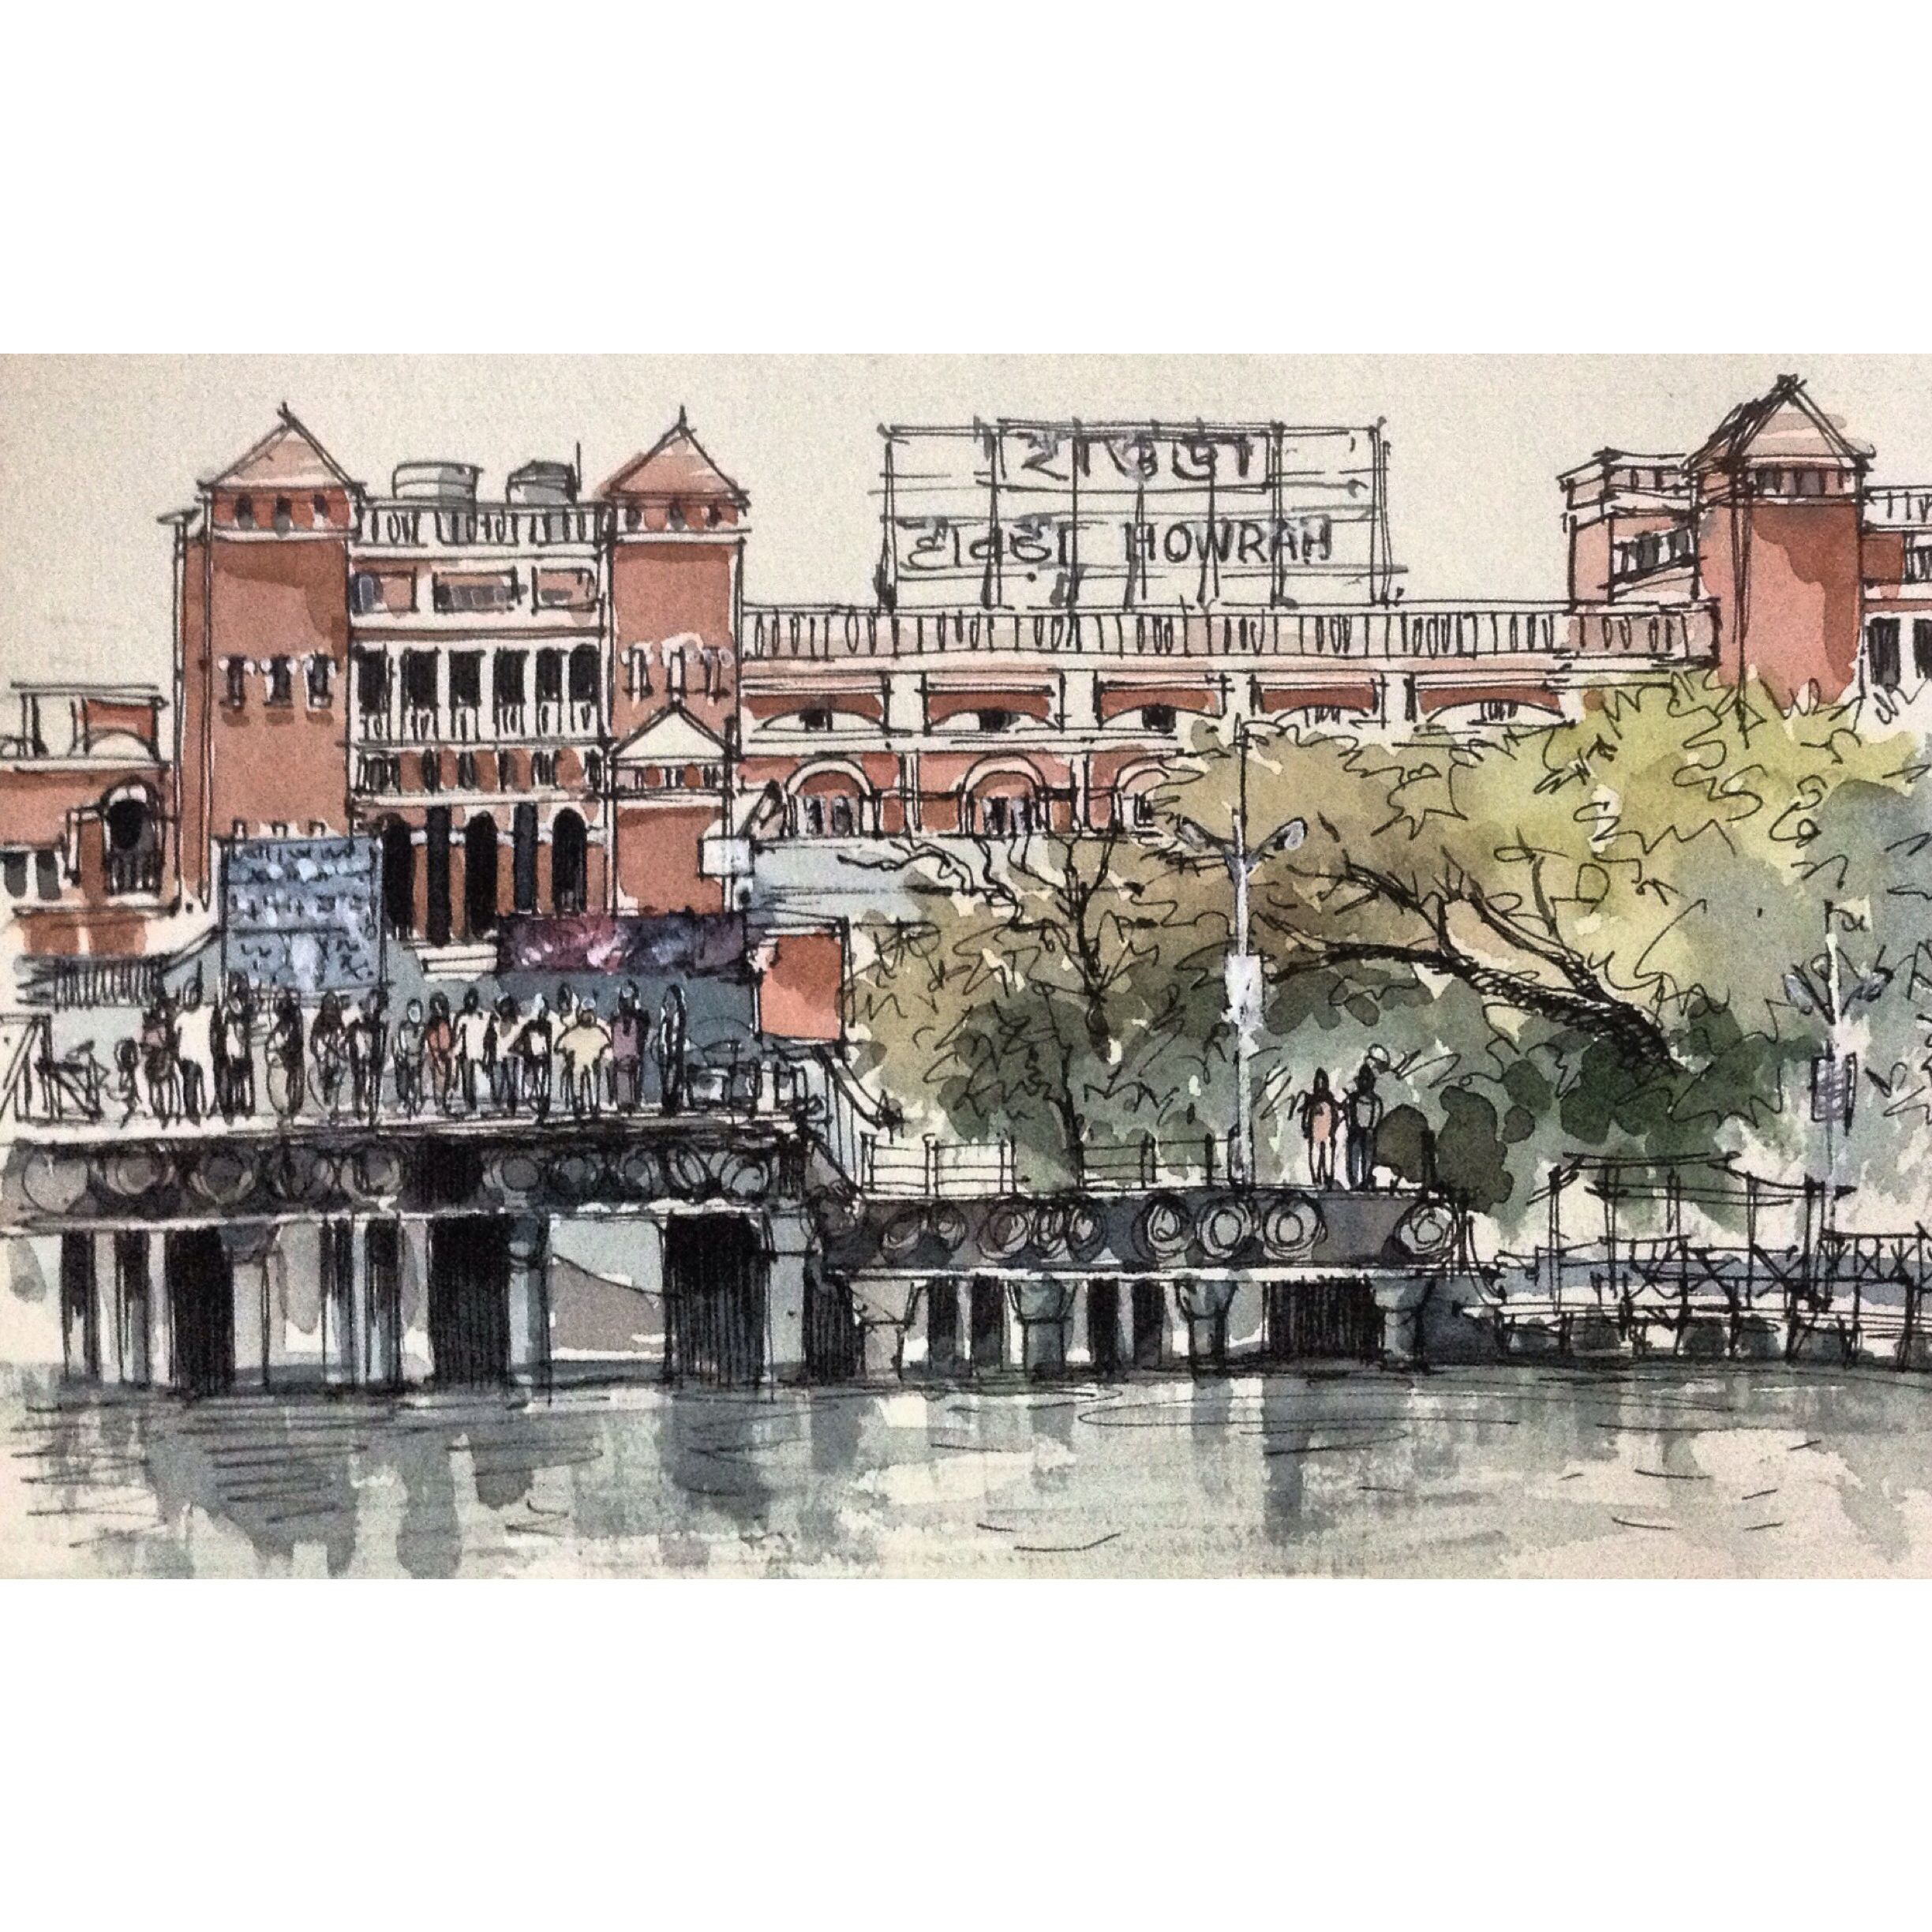 Jetty opposite howrah station calcutta ink and wash sketch by sushanto